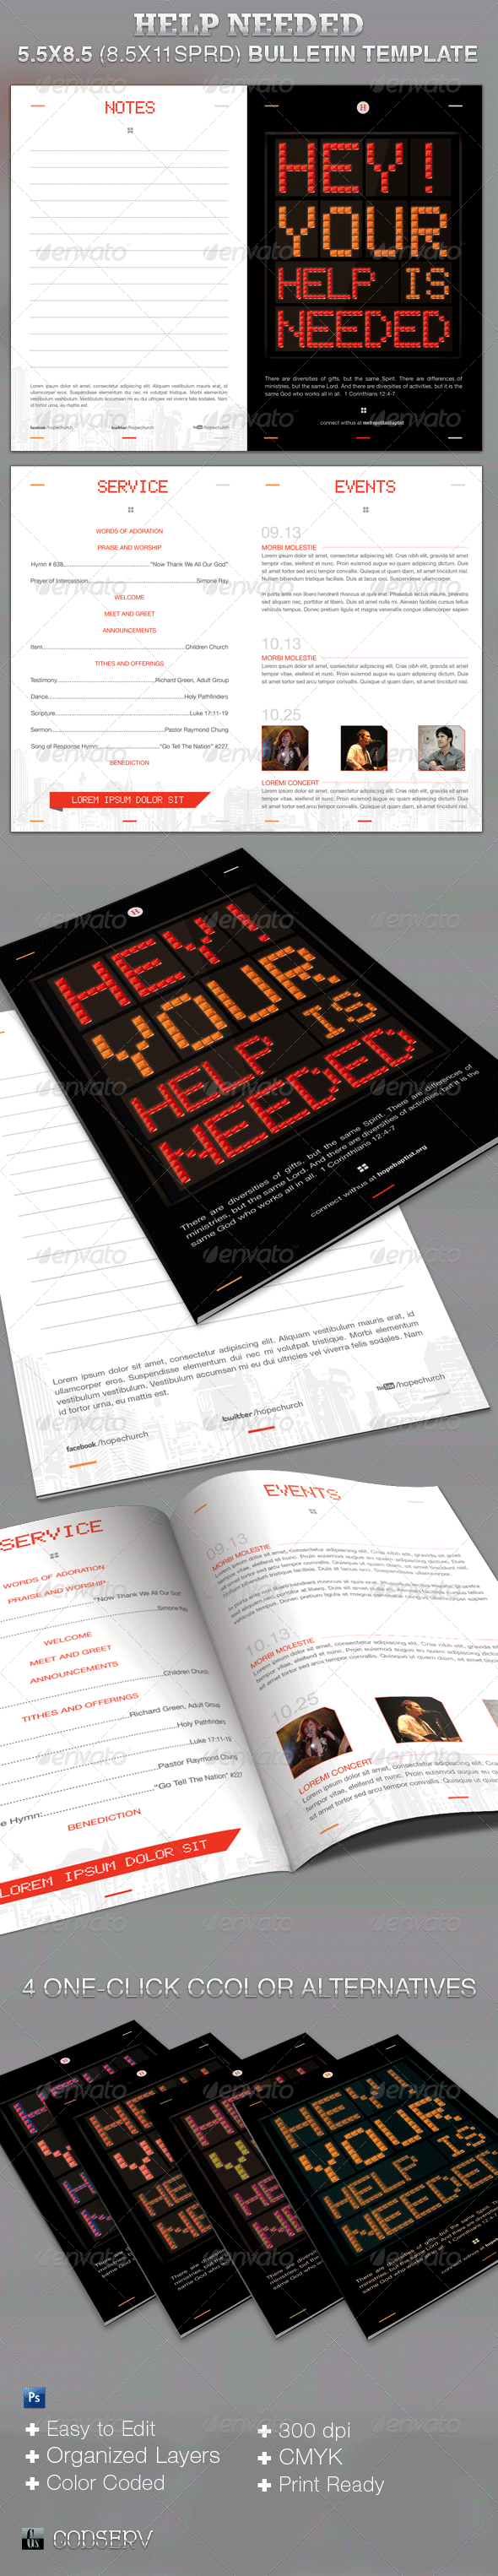 Help Needed Church Bulletin Template - Informational Brochures